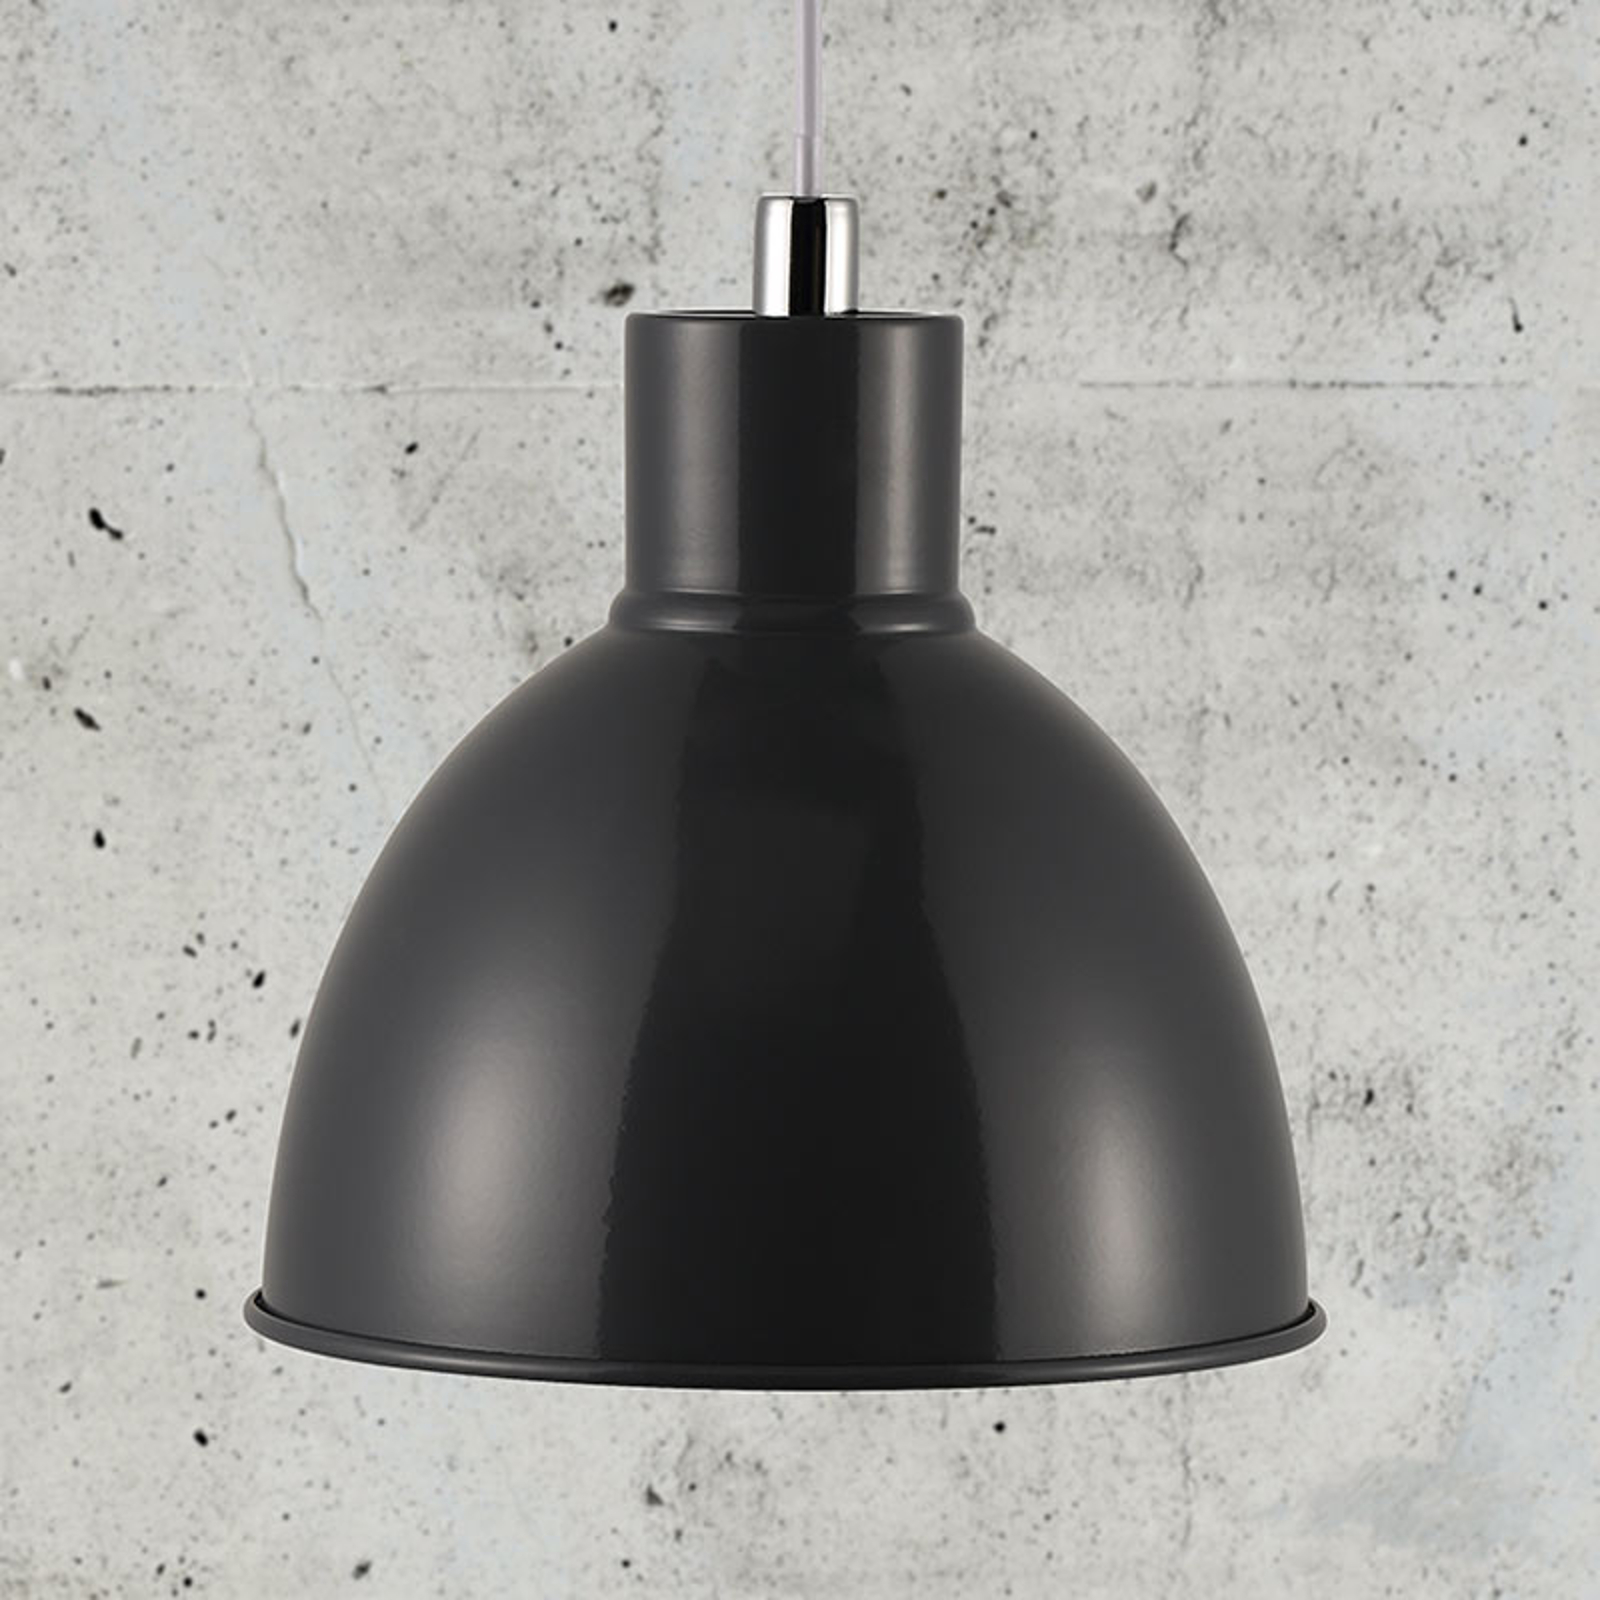 Hanglamp Pop met metalen kap, antraciet